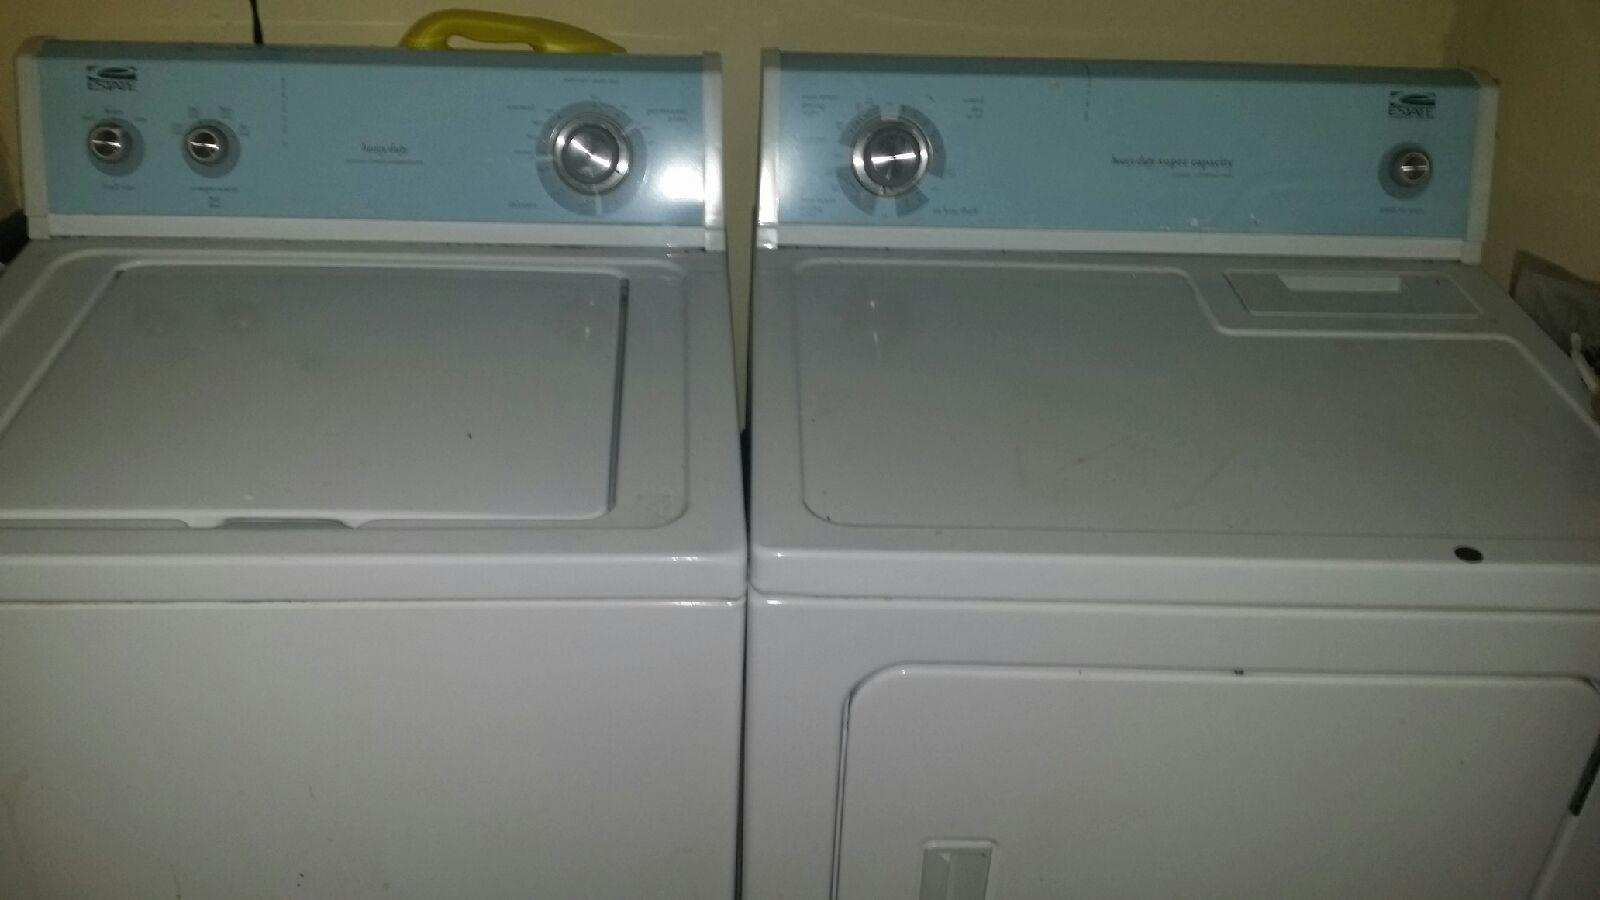 New Washer And Dryer New Washer Dryer Set 300 Brand Estate By Whirlpool Usa